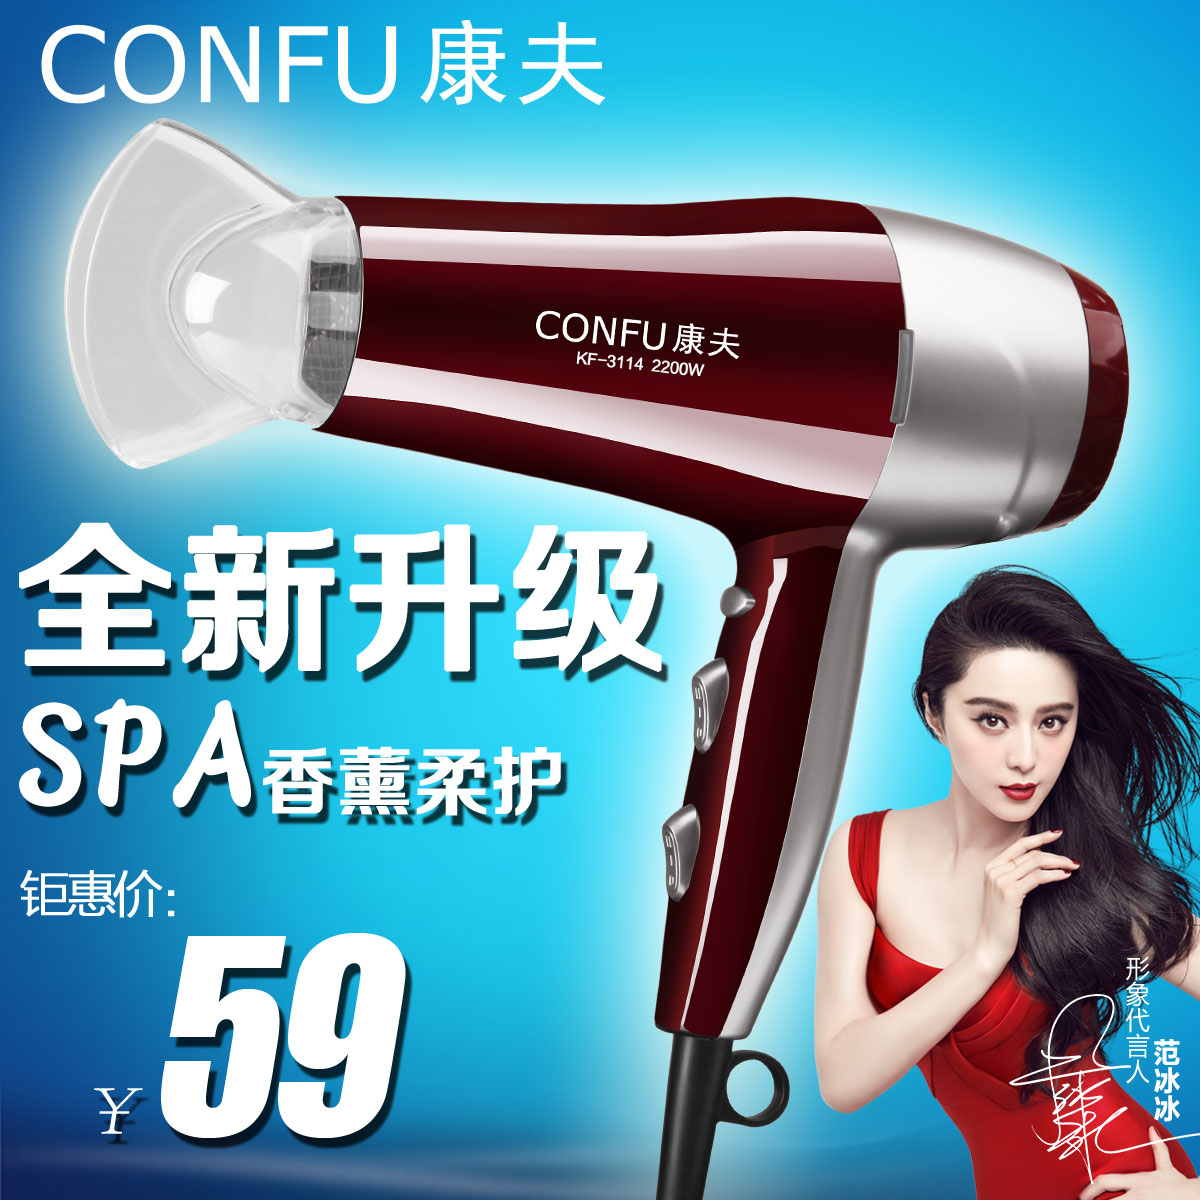 Yasuo hair dryer cold wind mute student dormitory hair dryer hair dryer household power salon hair dryer authentic